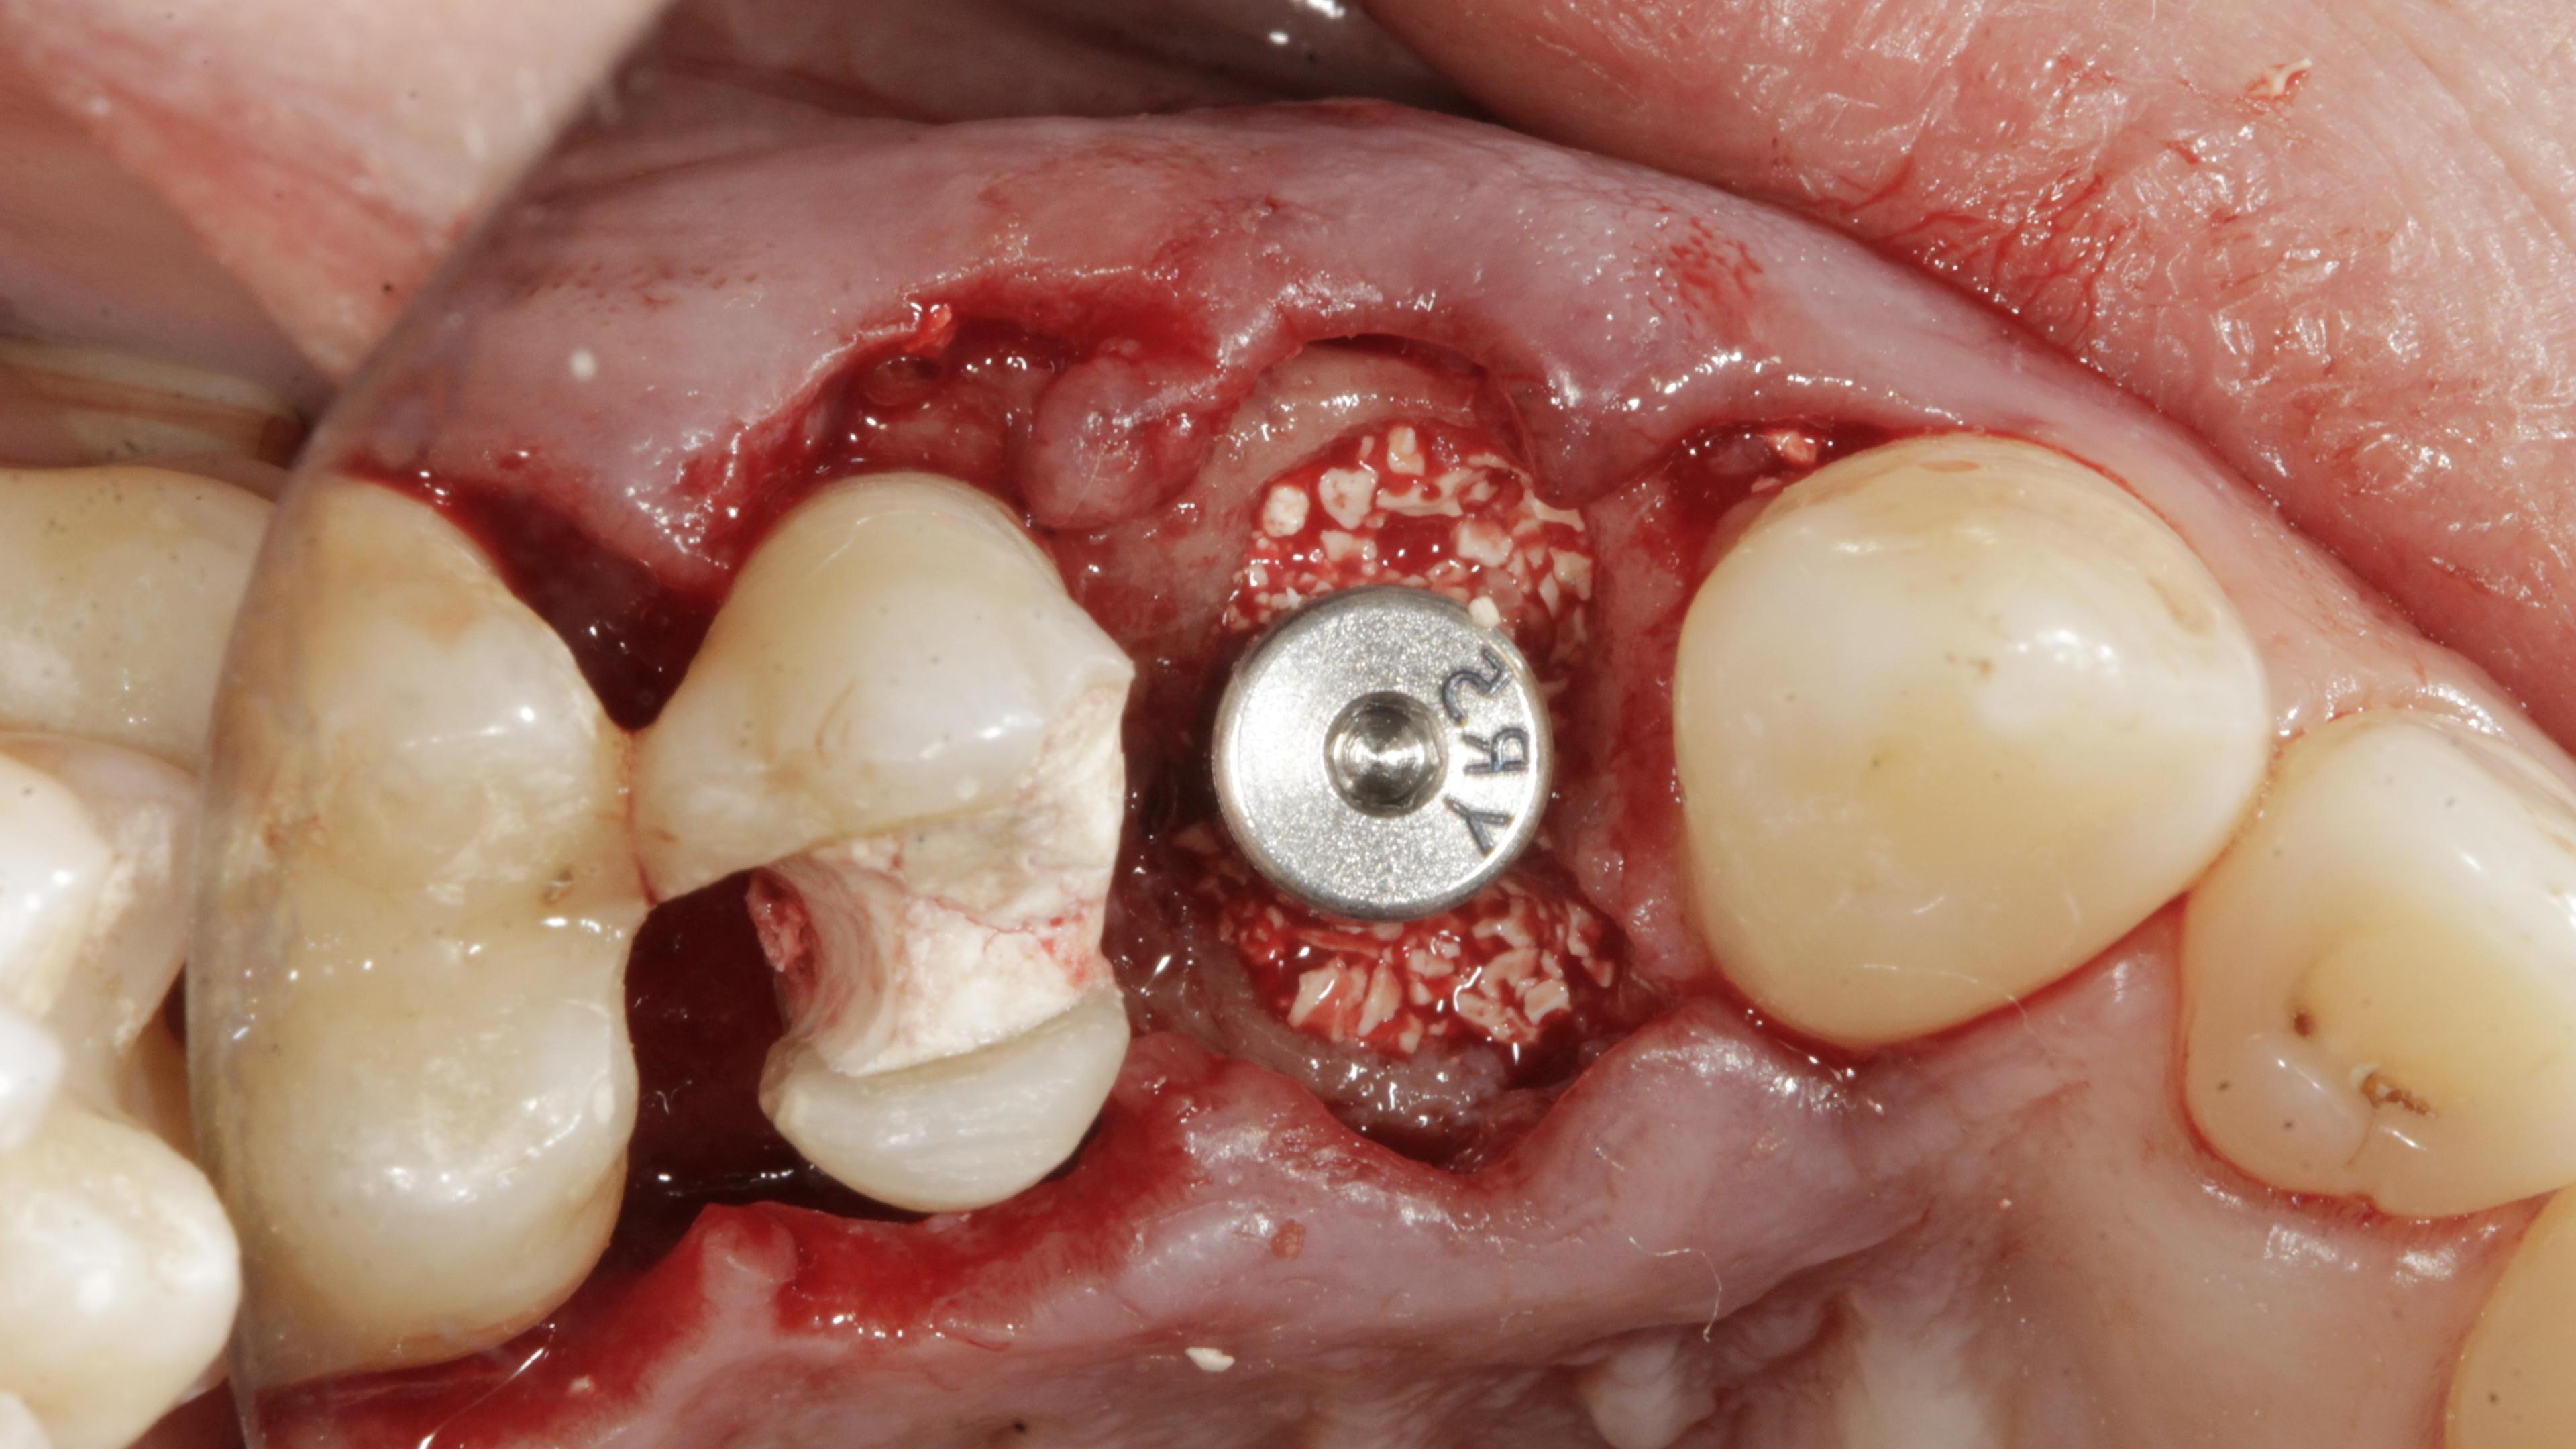 Immediate Implants After treatment - Immediate implant